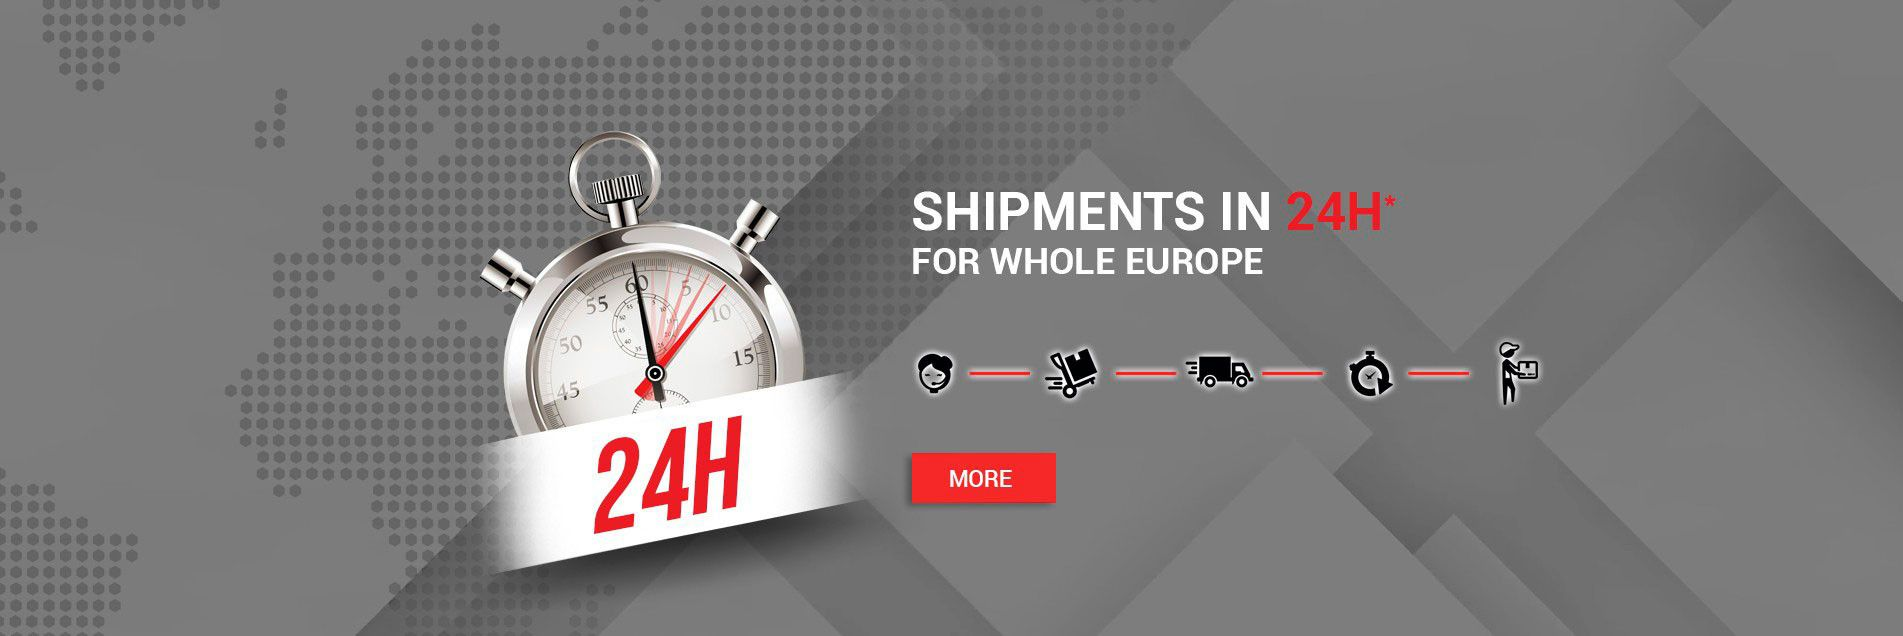 Shipments in 24h for whole Europe